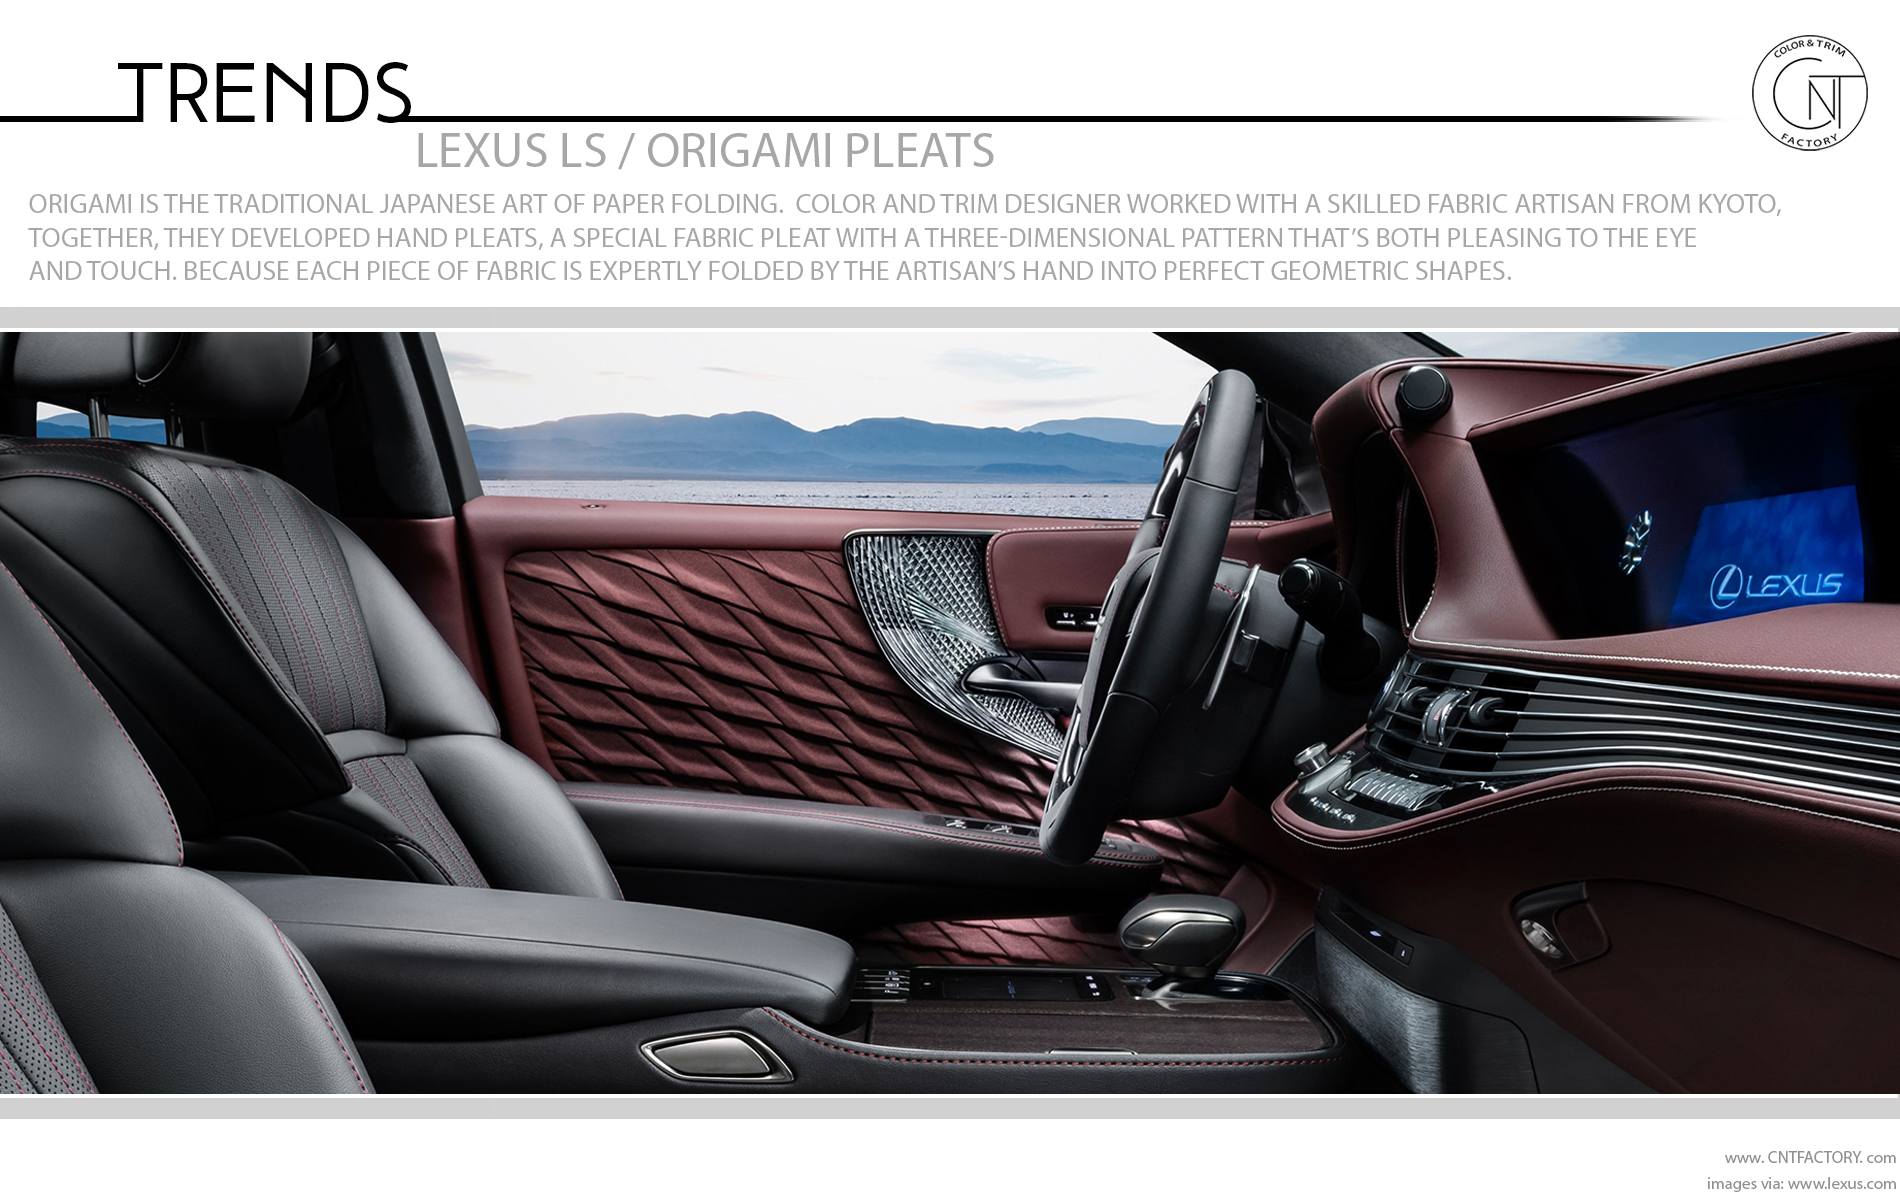 Lexus LS Color Trim Innovations